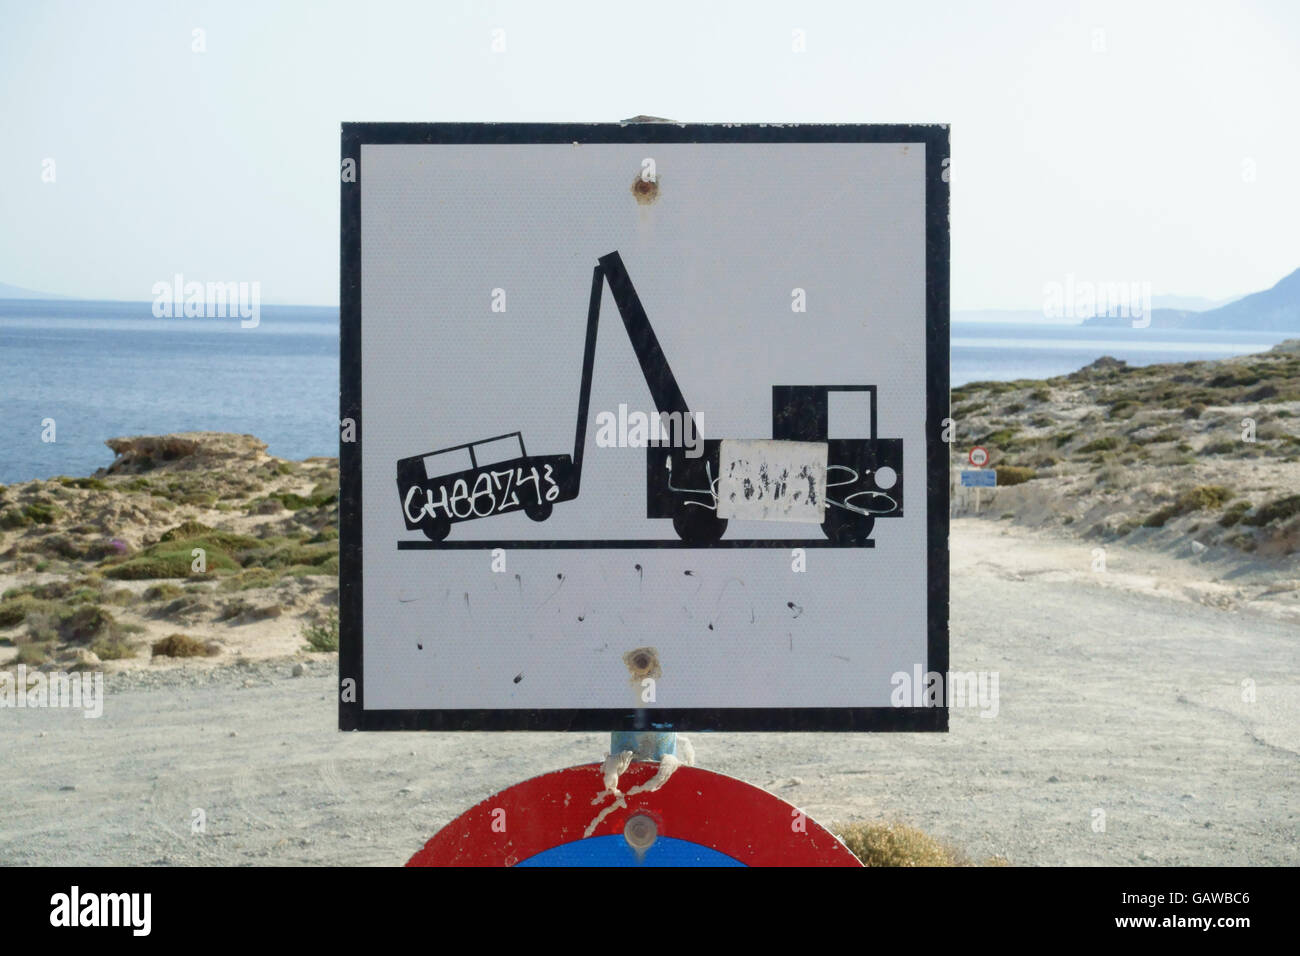 A very simple road sign on the coast of Milos Greece - Stock Image